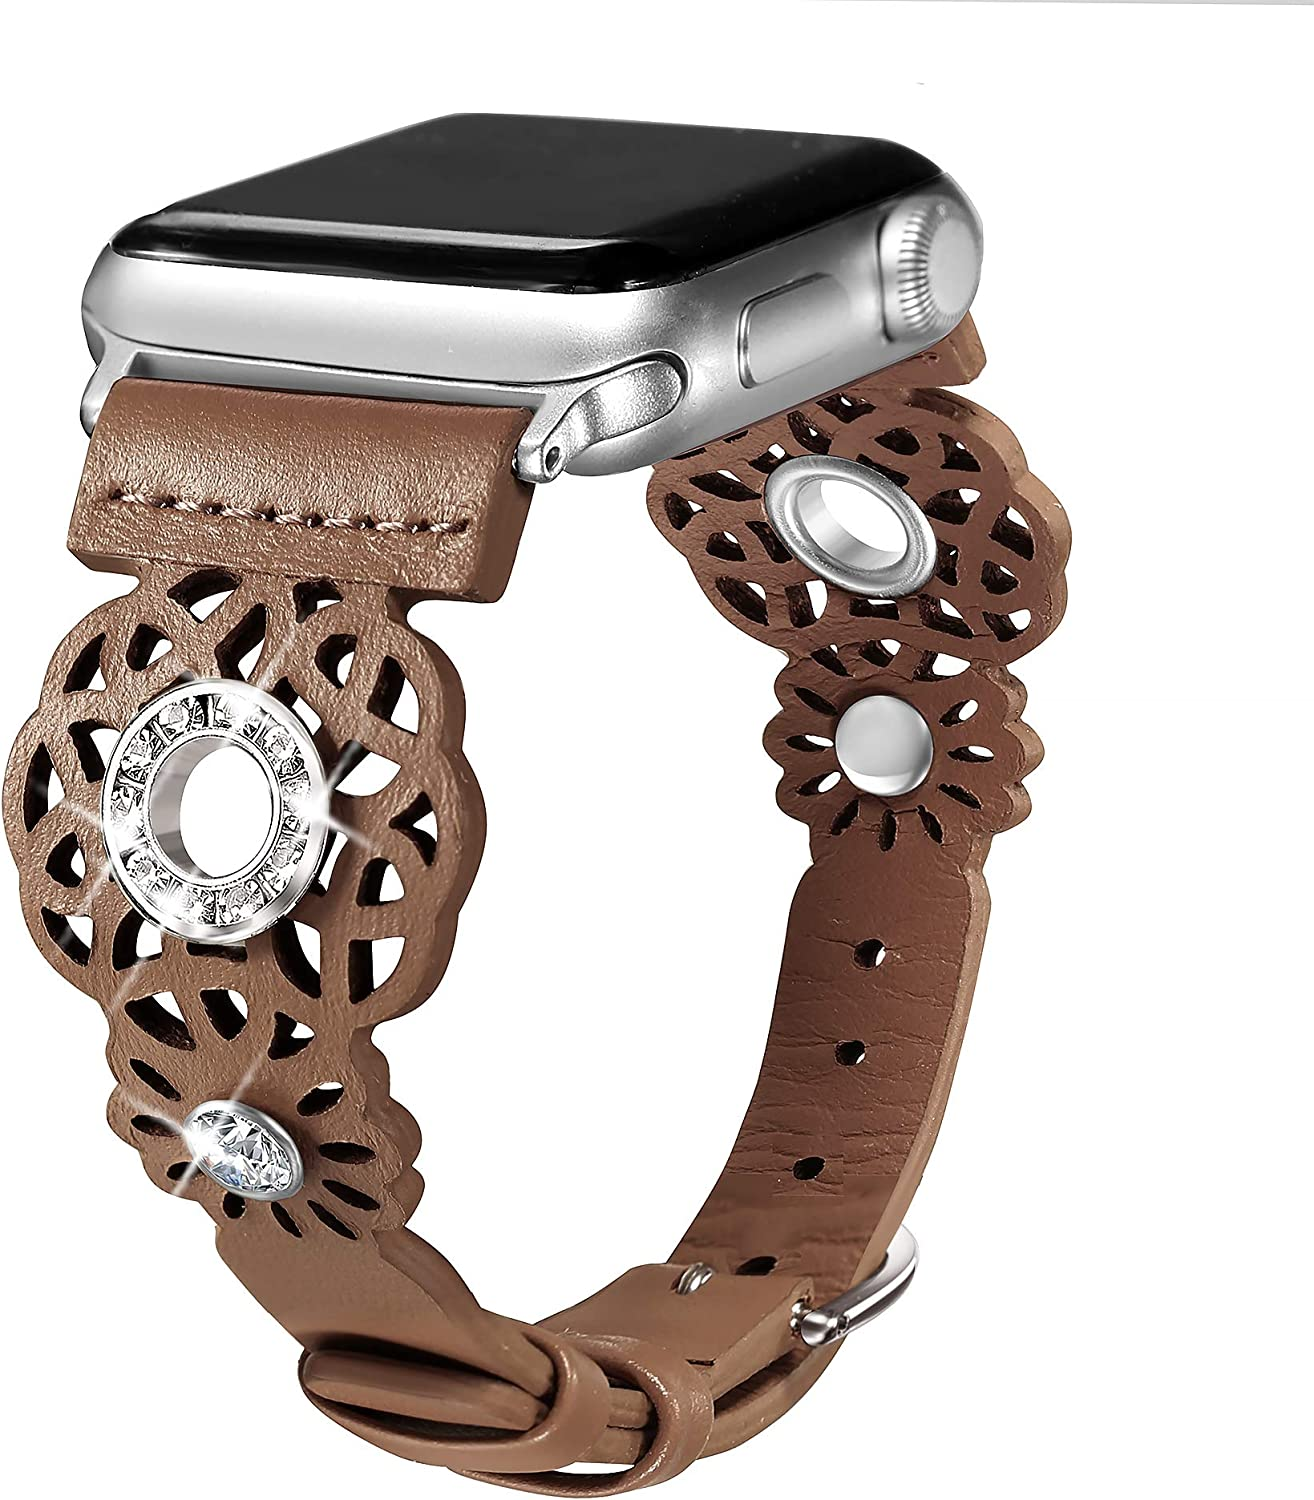 Secbolt Leather Bands Compatible with Apple Watch Band 38mm 40mm iWatch Series 6/5/4/3/2/1/SE, Soft Top Grain Genuine Leather with Rhinestones Wristband Strap Accessories Women